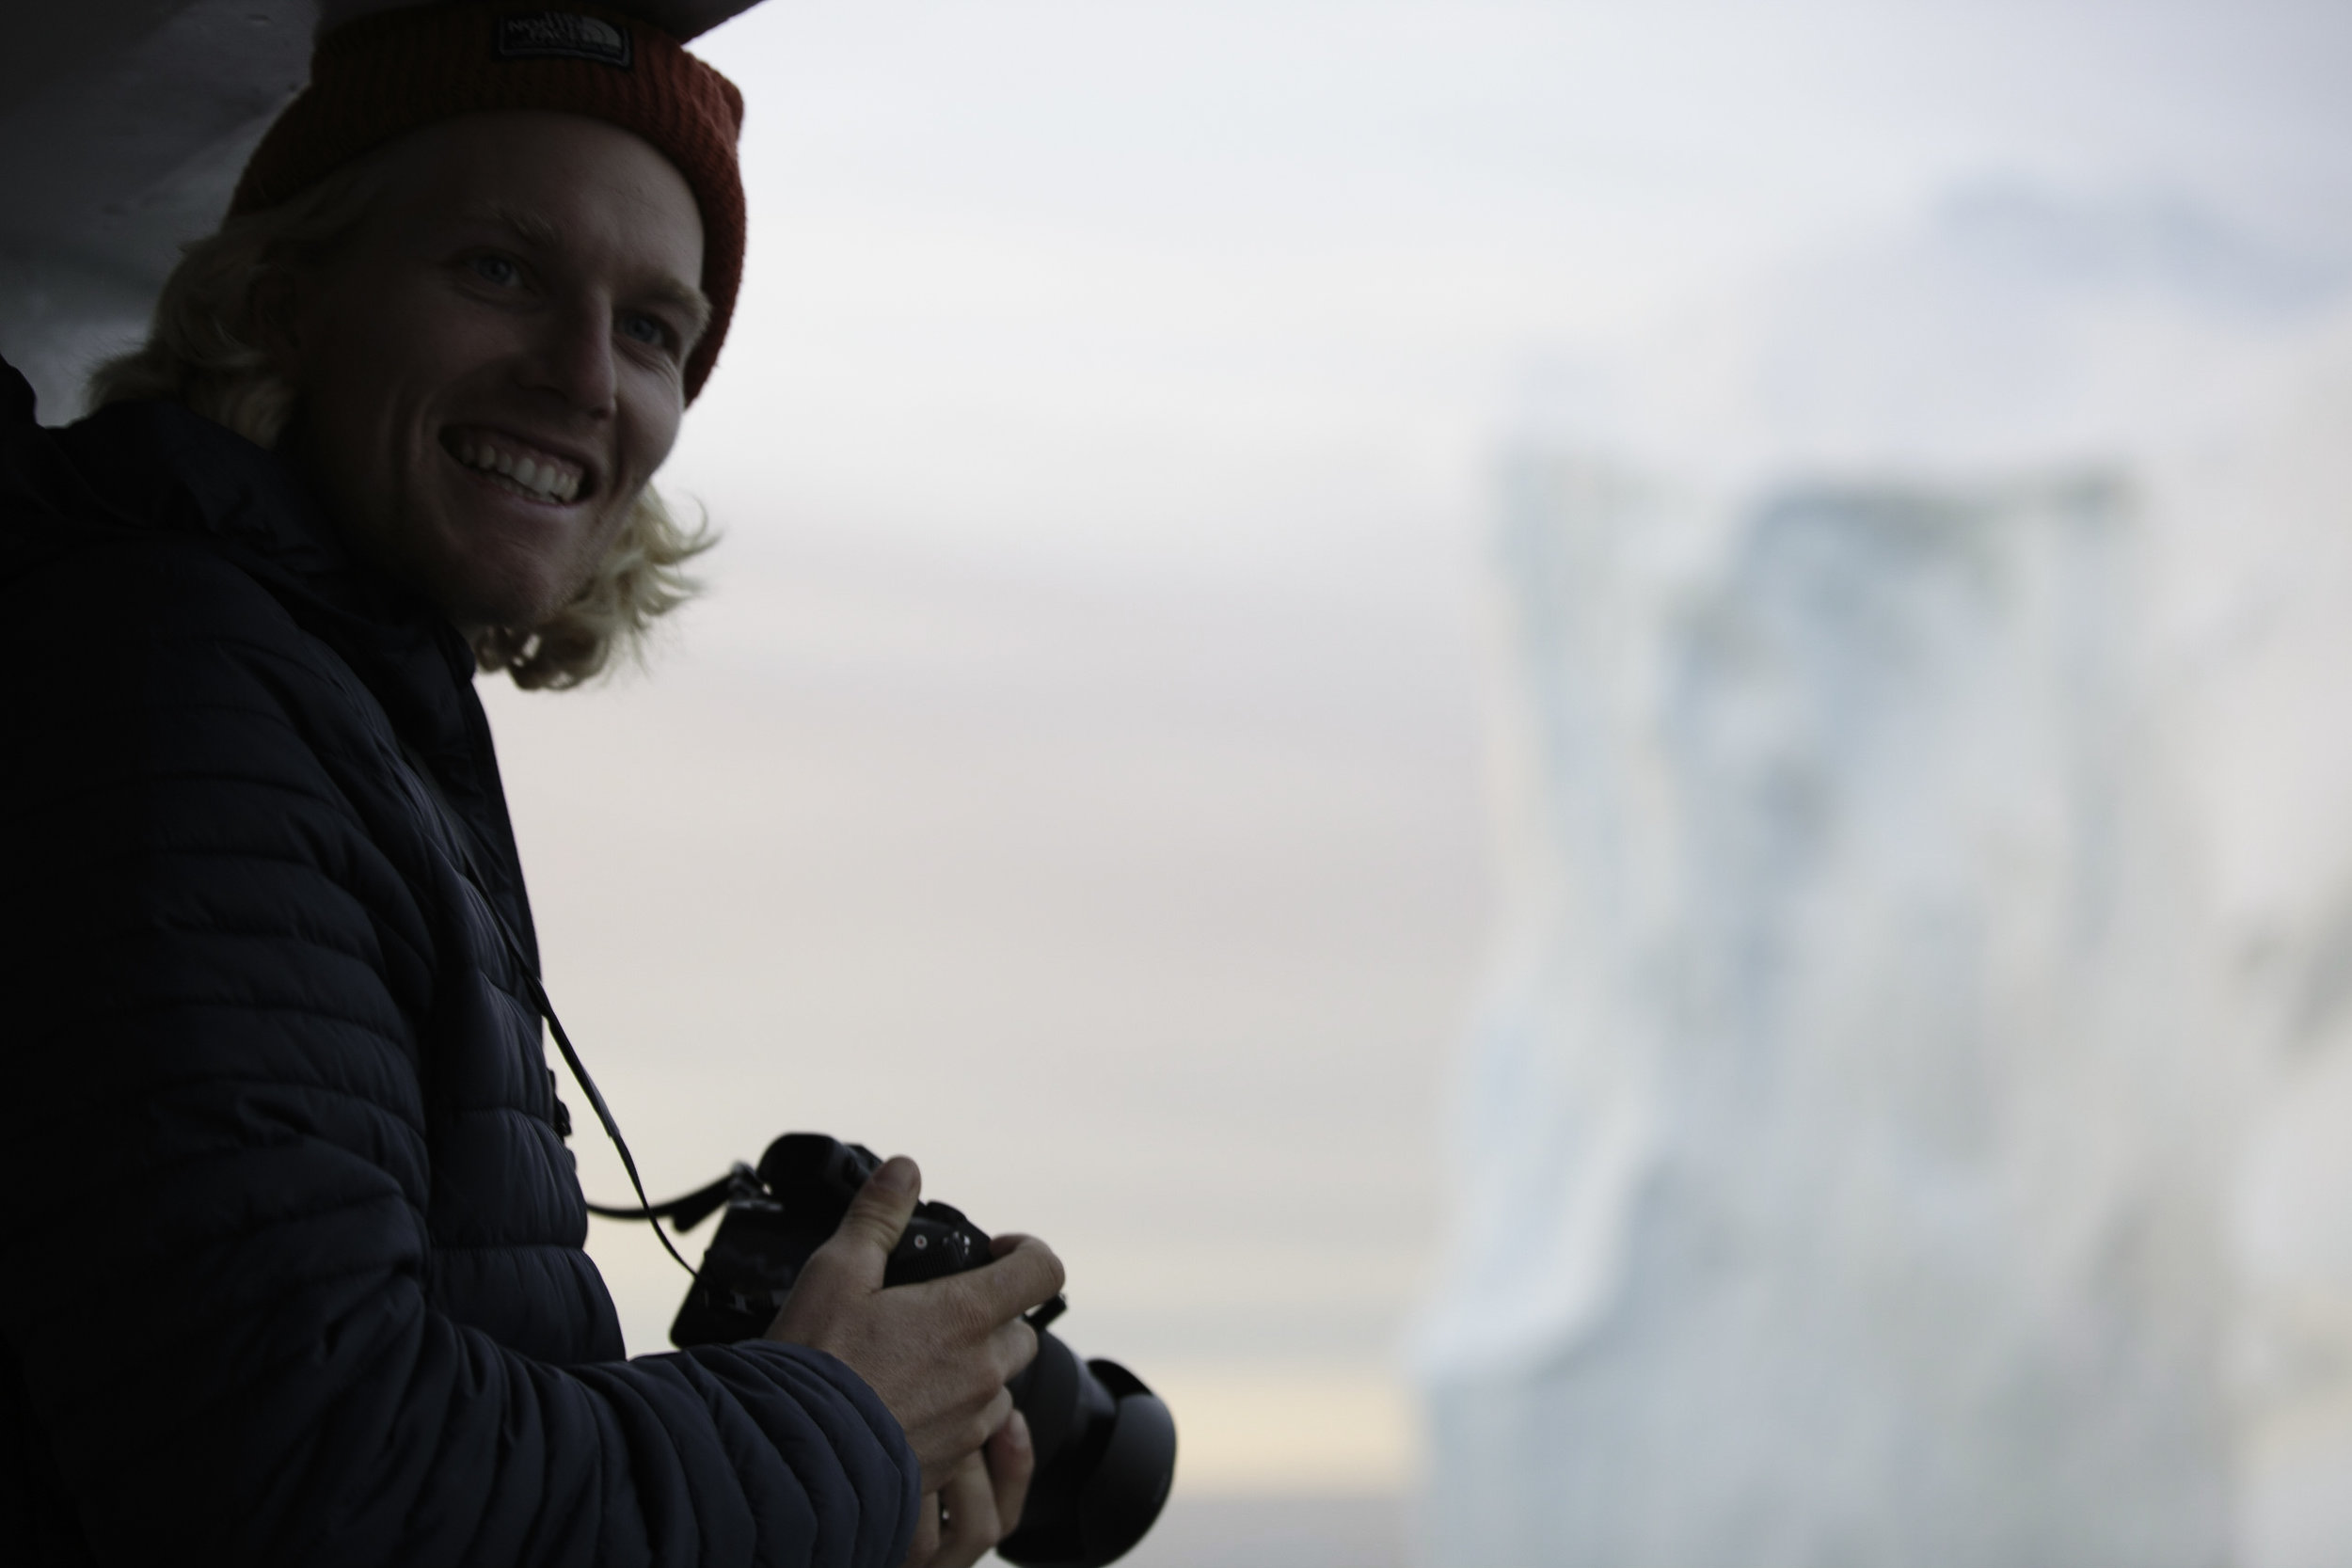 Blake grabbing a snap of an iceberg passing by.